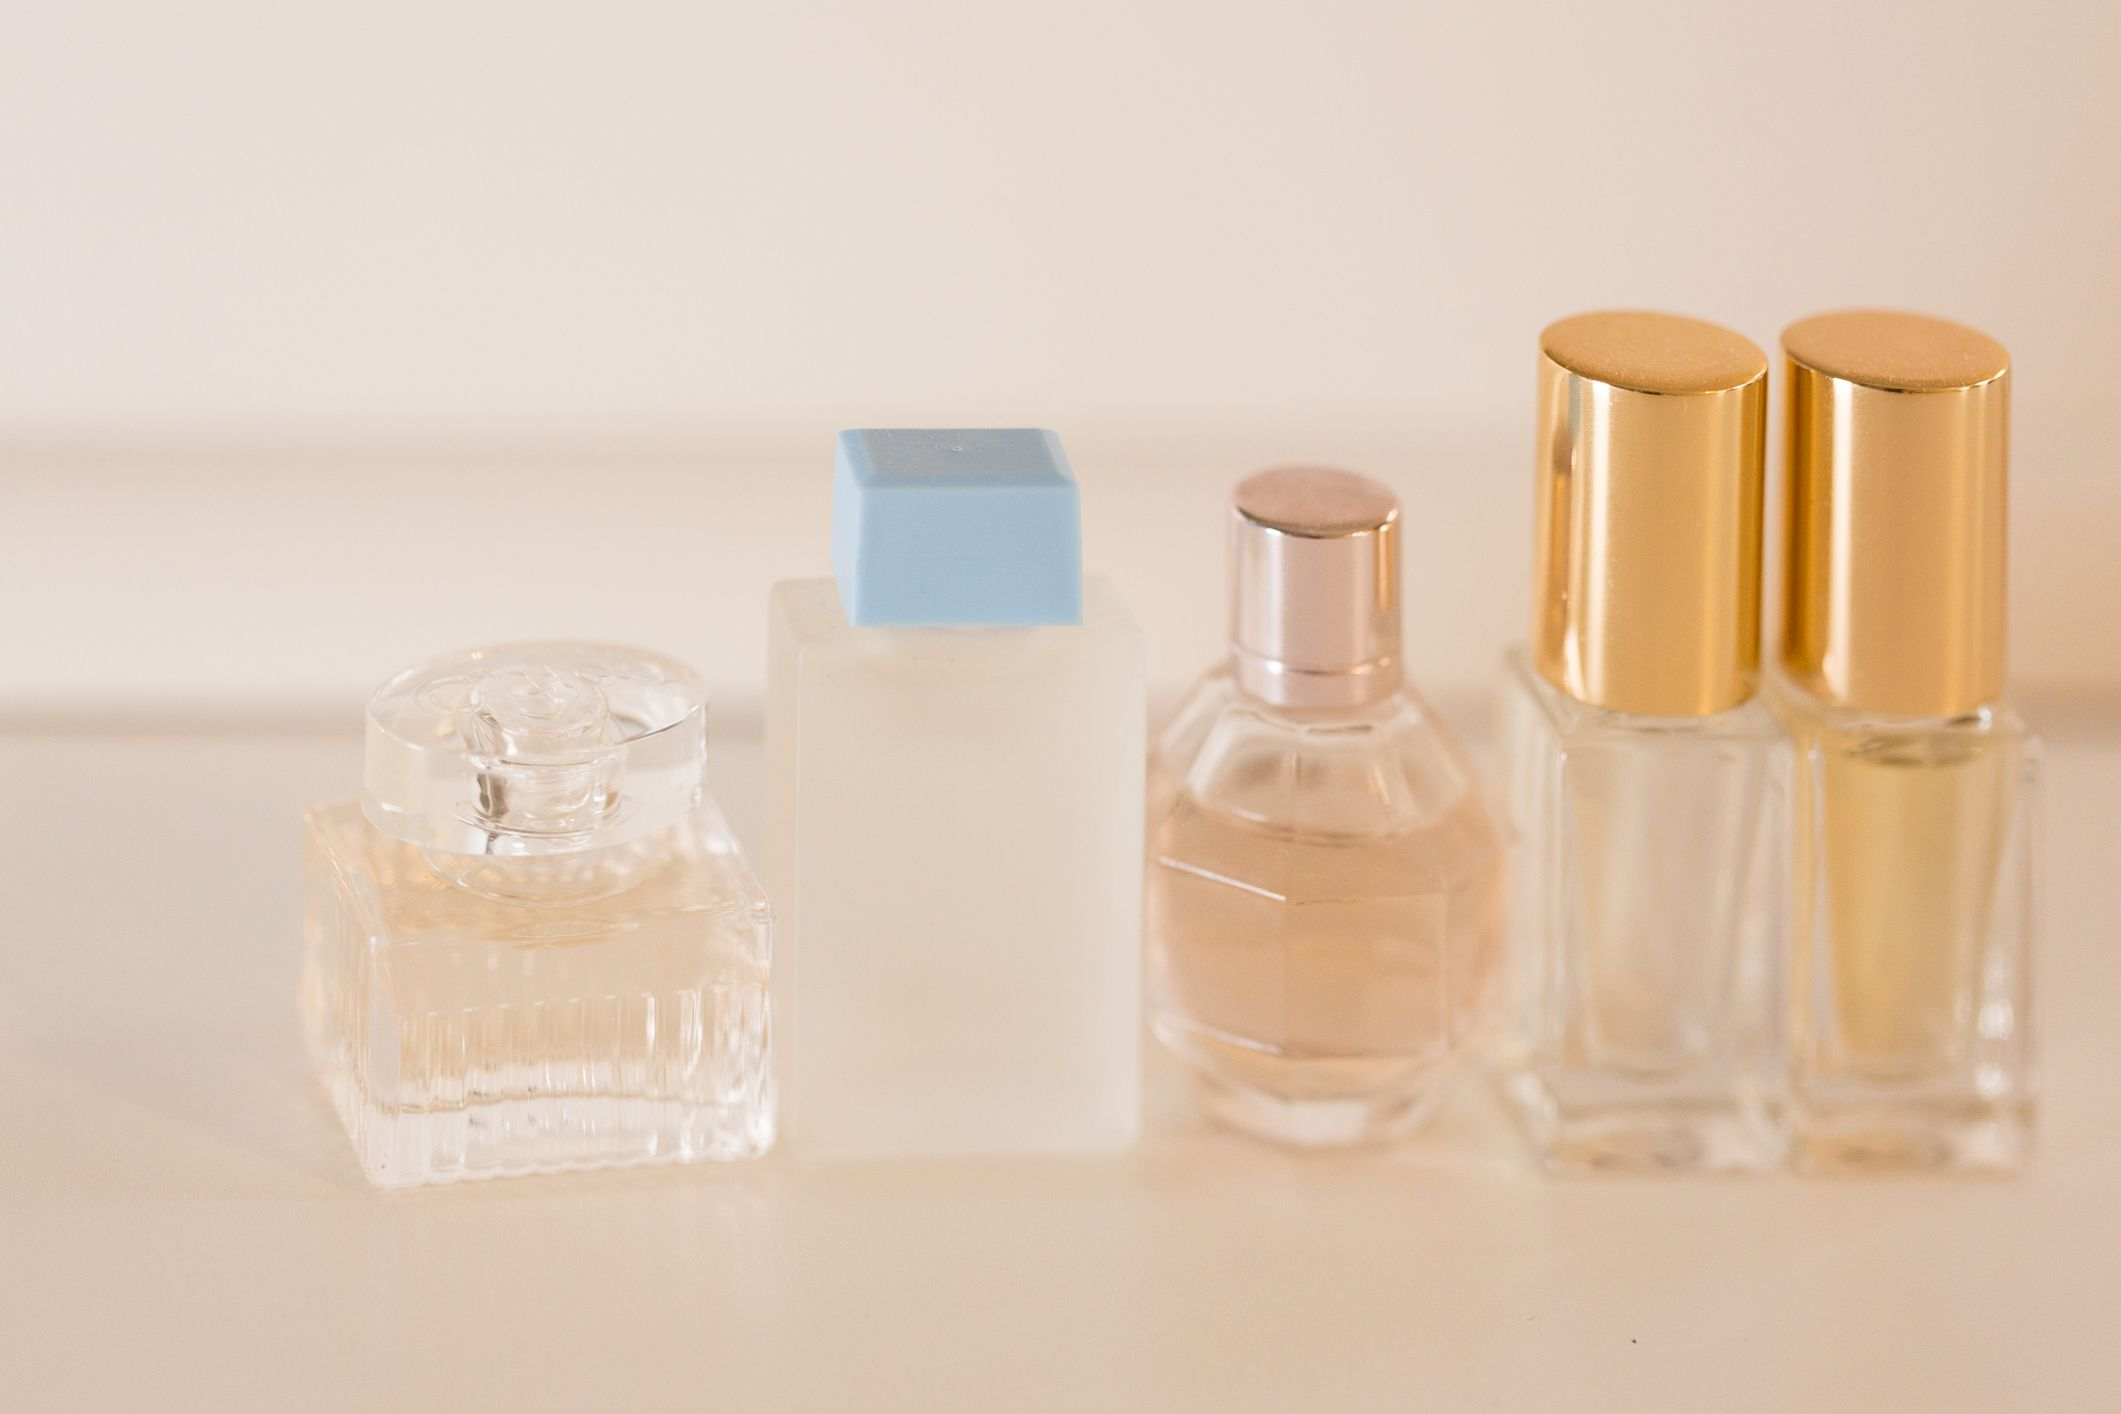 Perfume beauty sample bottles lined up on a table.